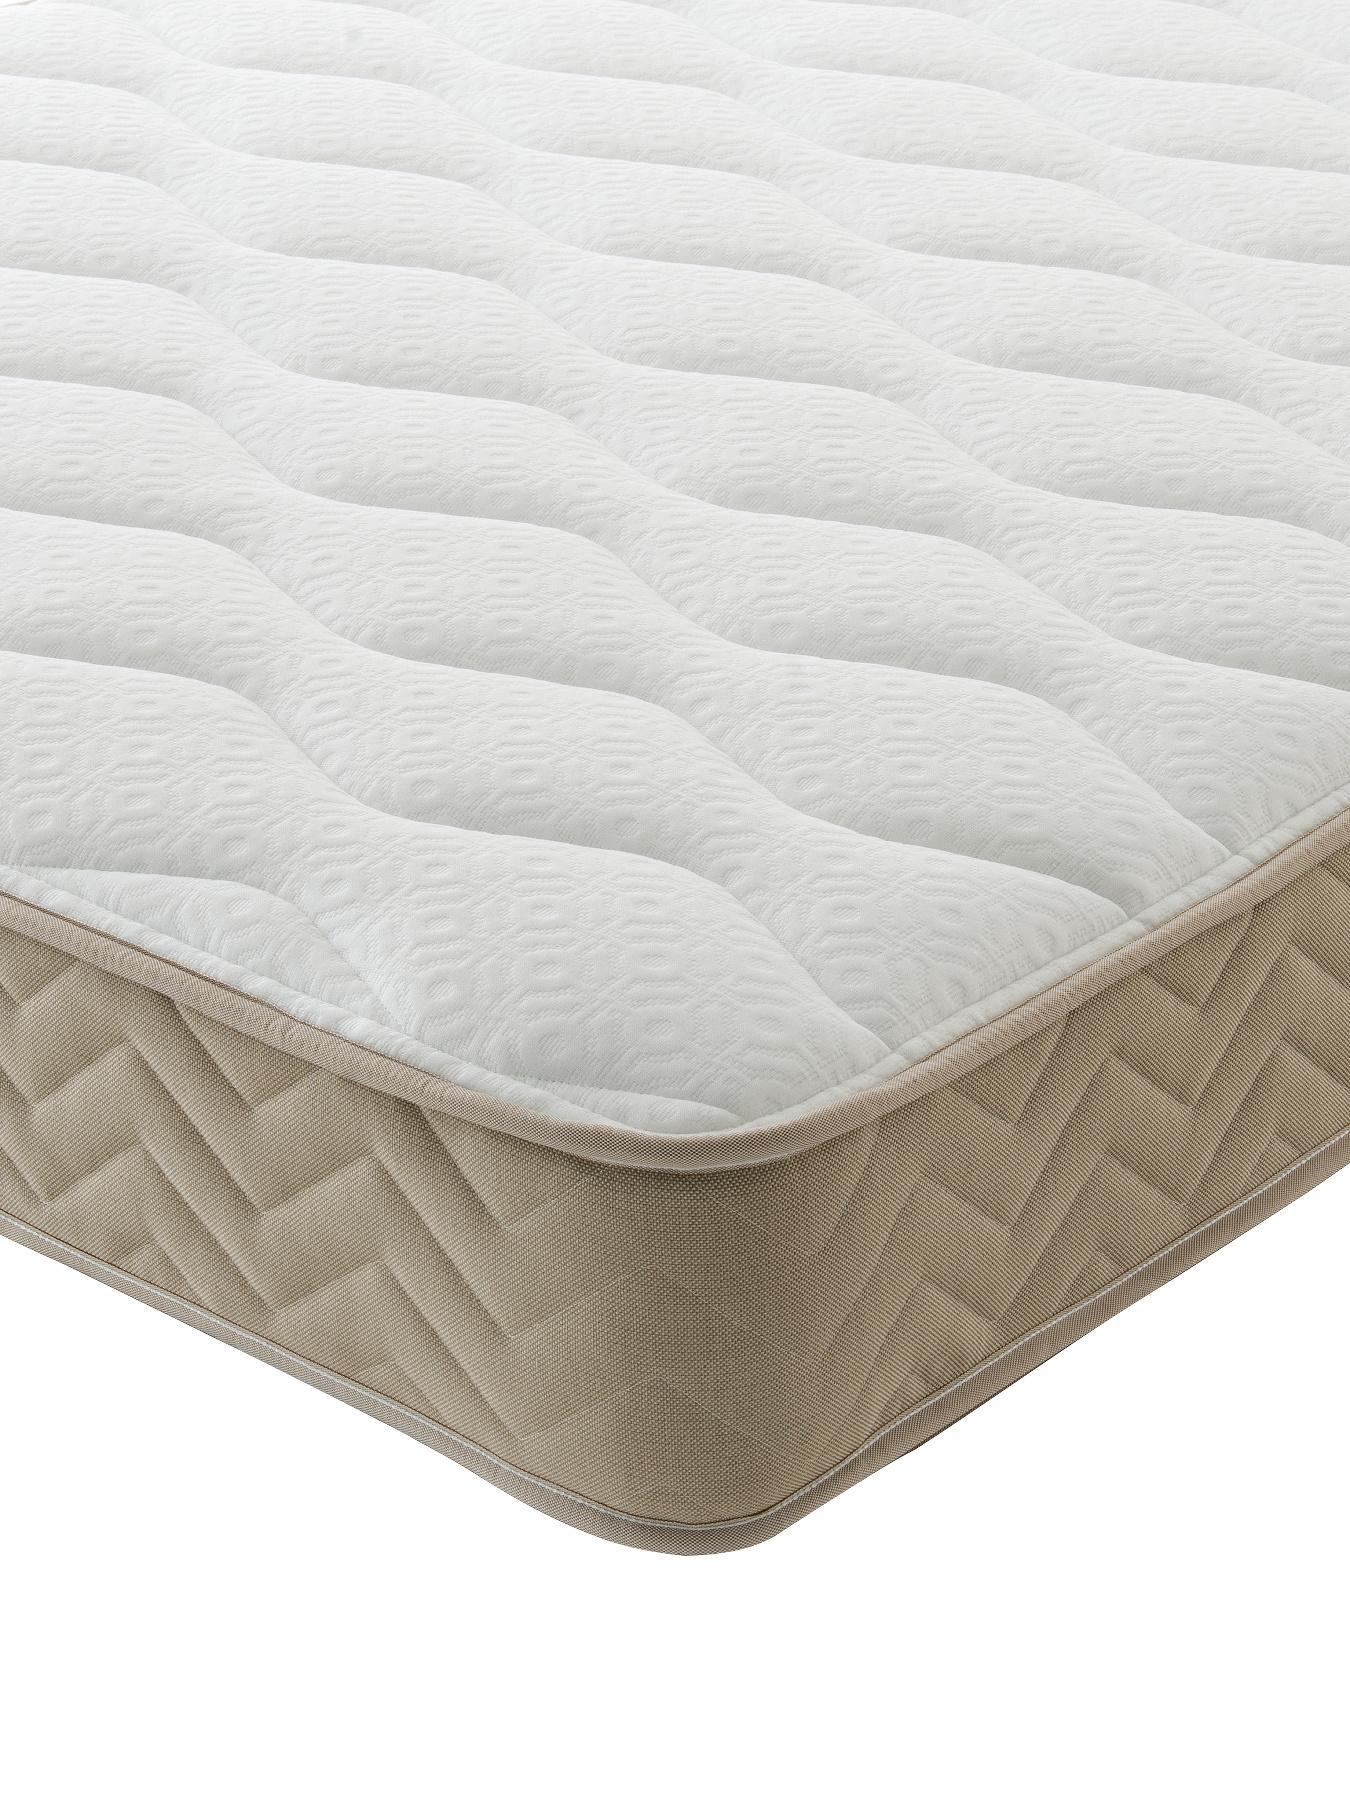 Silentnight Miracoil 3 Luxury Microquilt Mattress